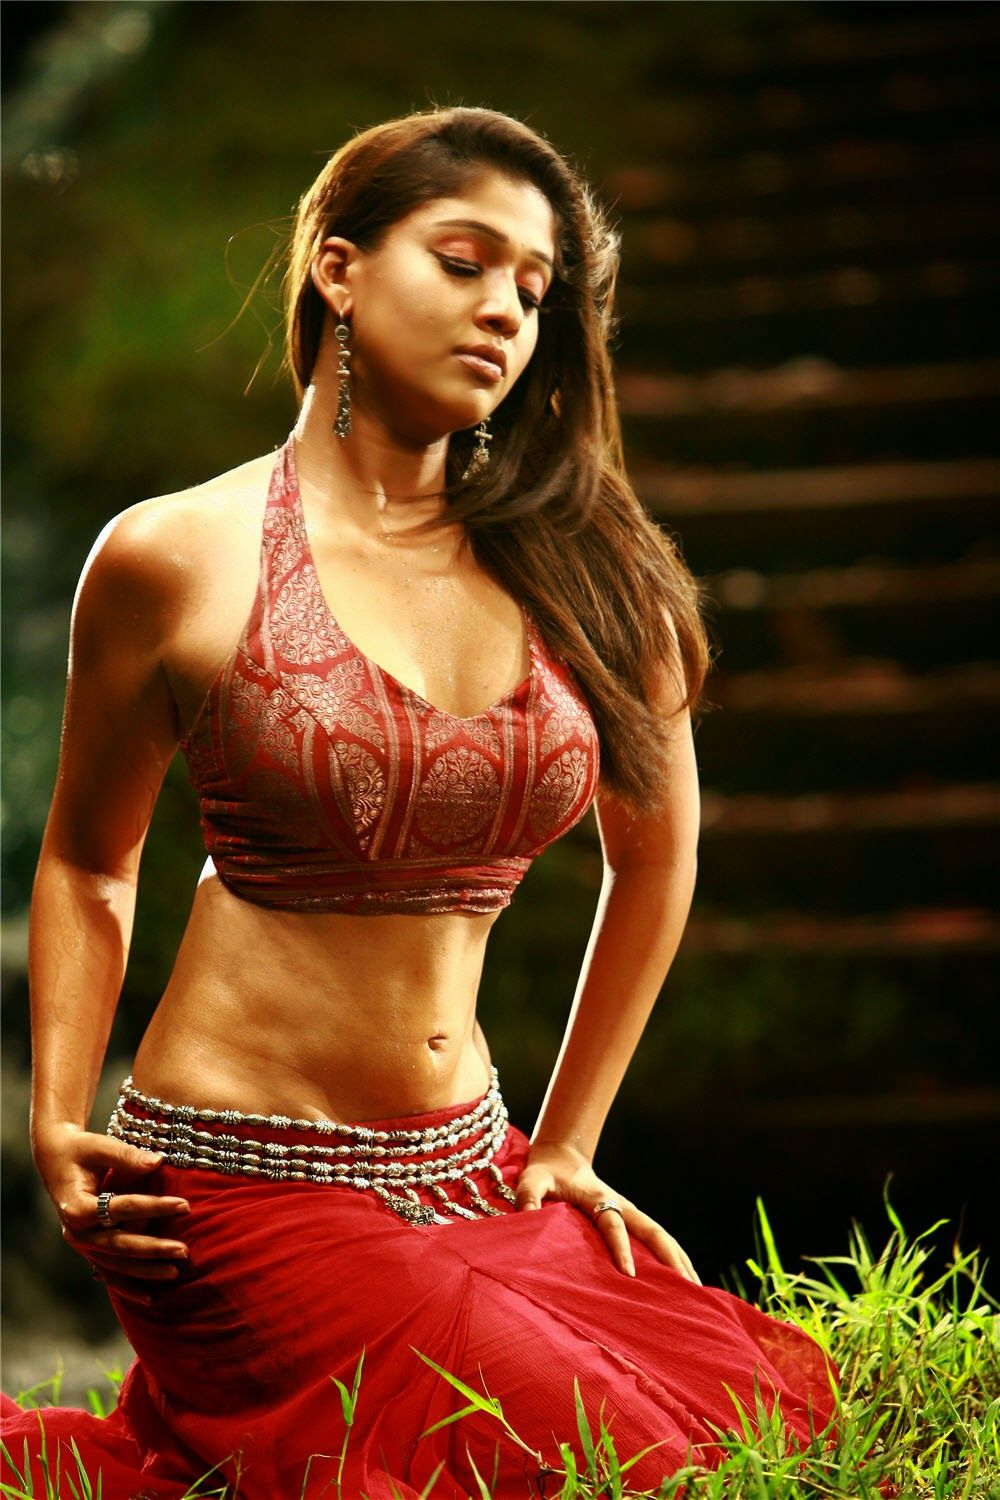 Tamil Actress Nayanthara Hot Navel Show Hd Photo Gallery 1  Hot South Indian Actress Images-9447